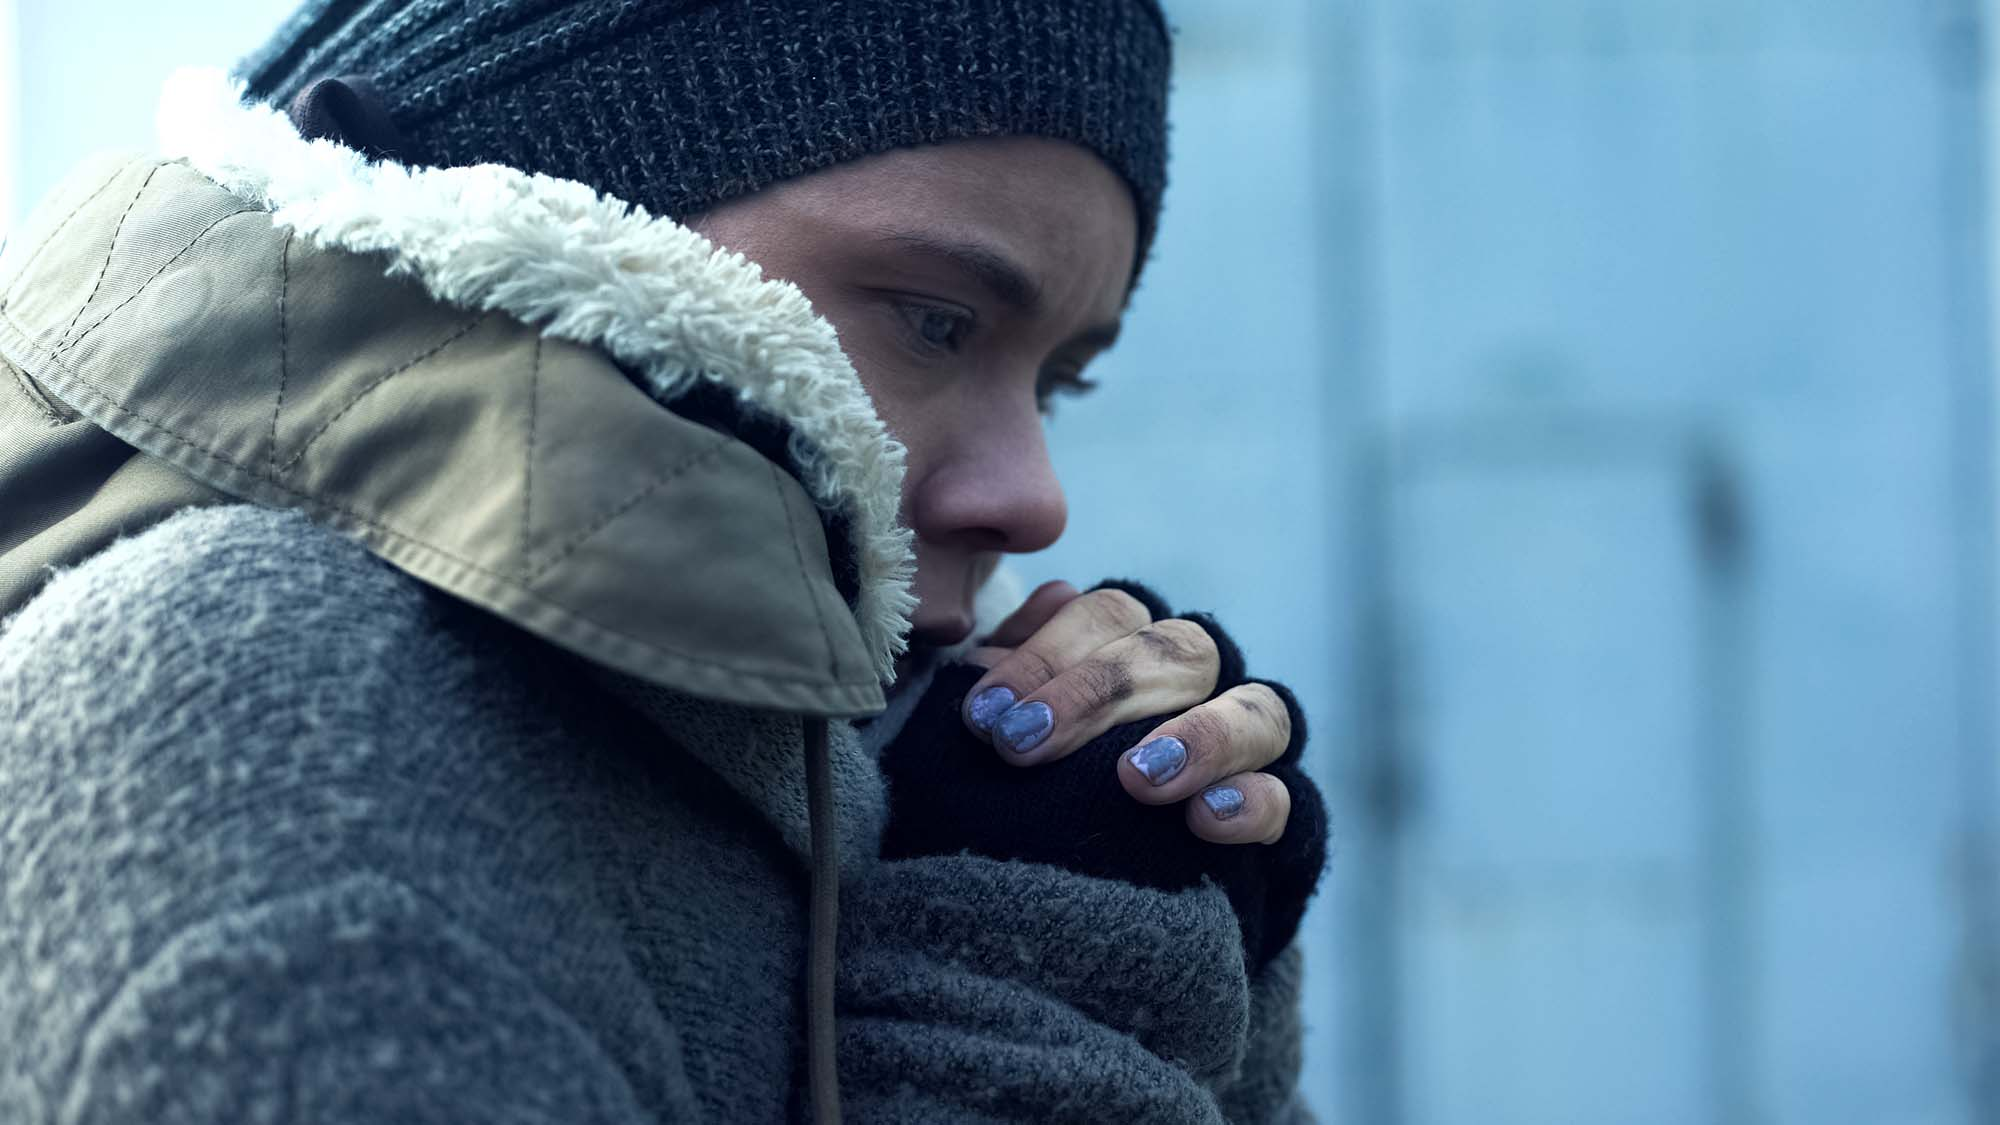 A woman in a knitted hat, fingerless gloves, chipped nail polish, and a large jacket with a furry hood comforts herself in the cold. Her clasped hands are at her chin, and she stares slightly downwards. She appears to be lonely.